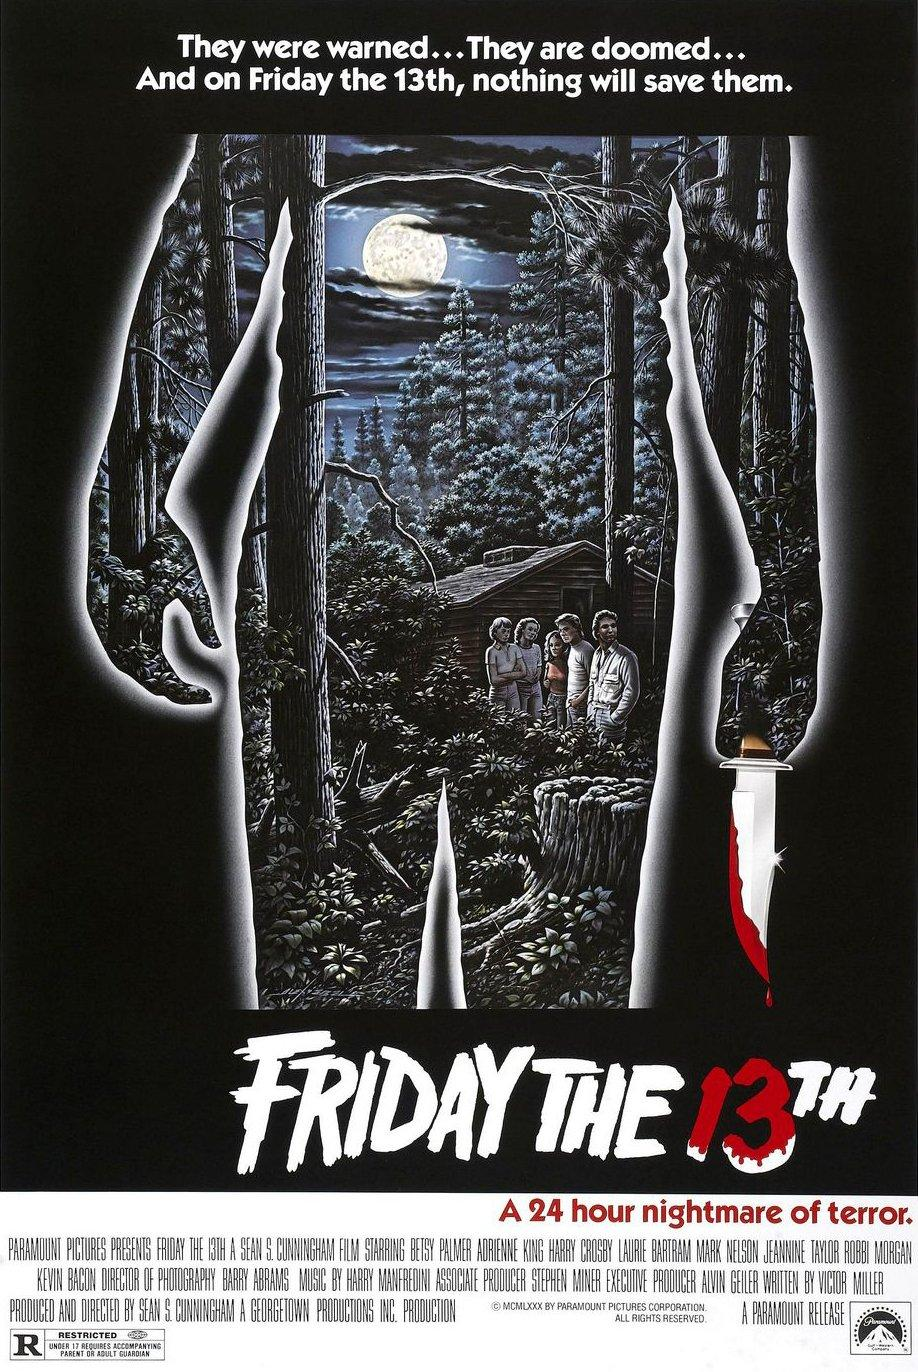 Friday the 13th. Image via IMDB.